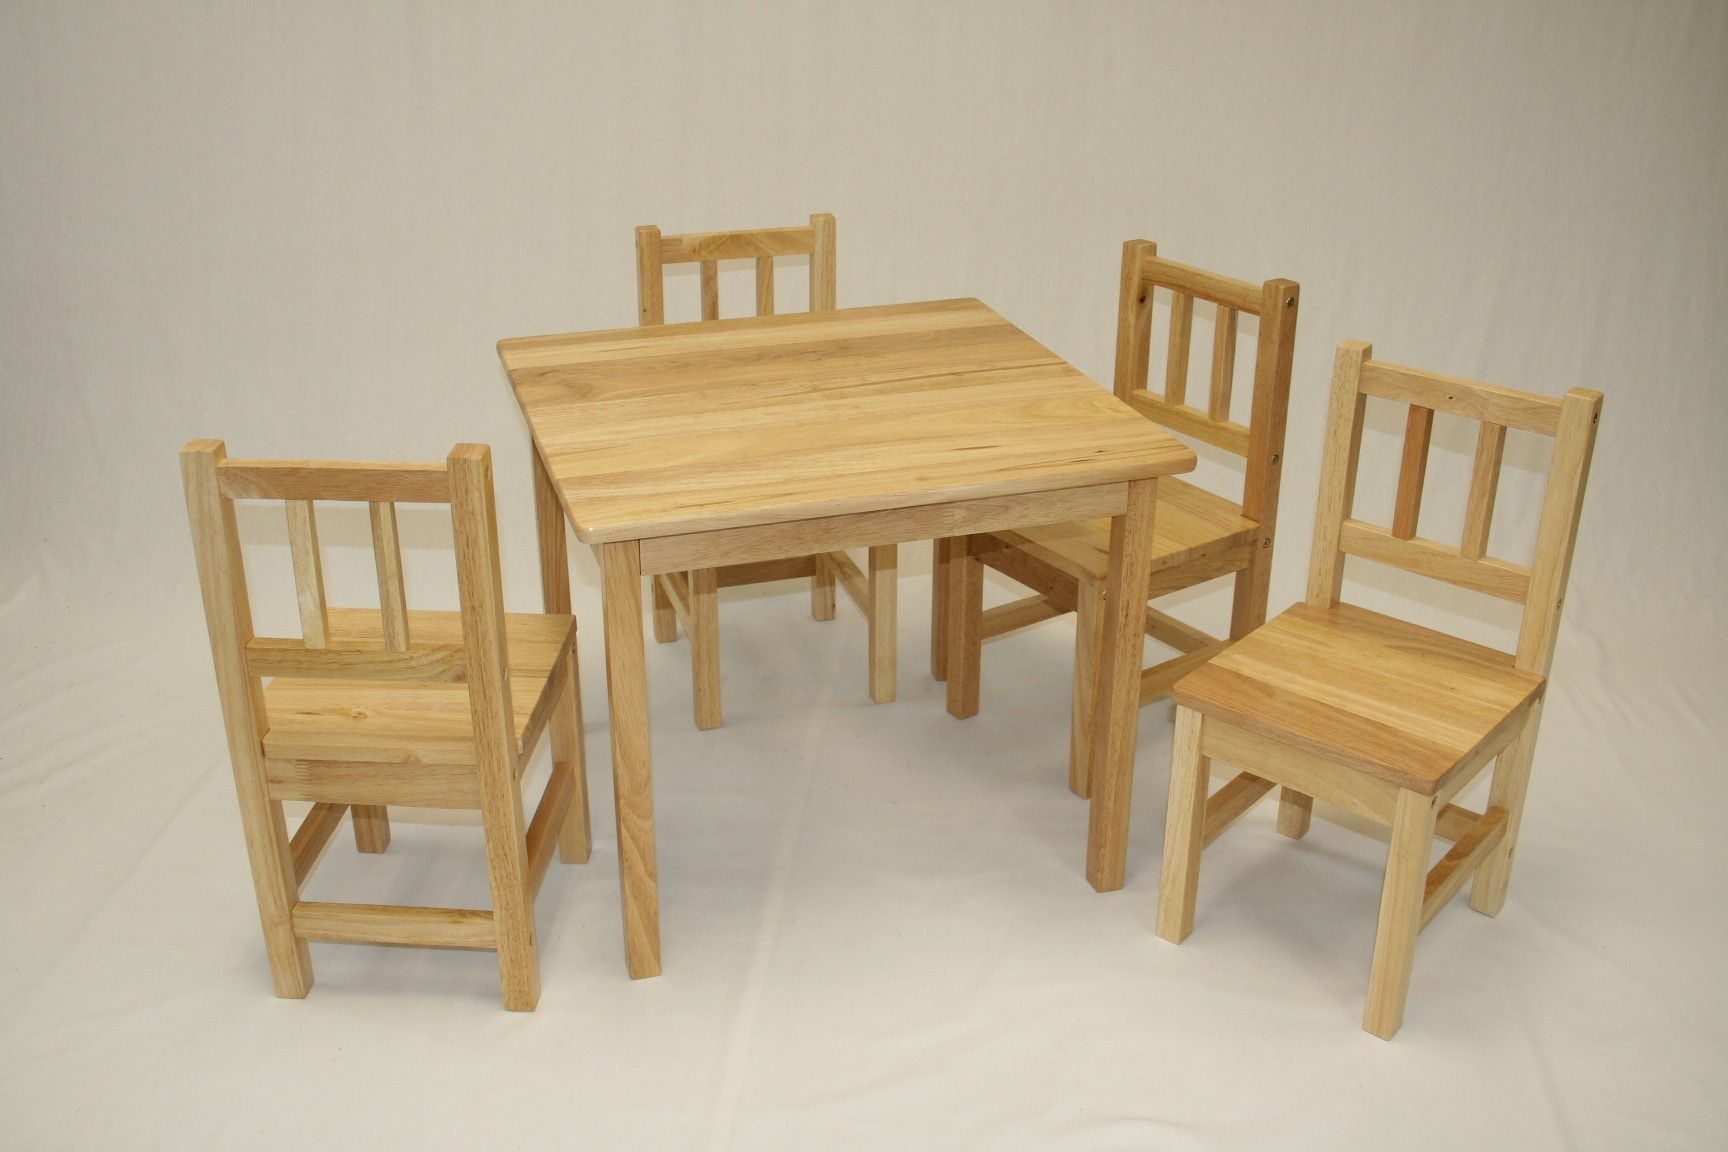 Surprising Kids 5 Piece Table And Chair Set Tables Wooden Table Interior Design Ideas Jittwwsoteloinfo